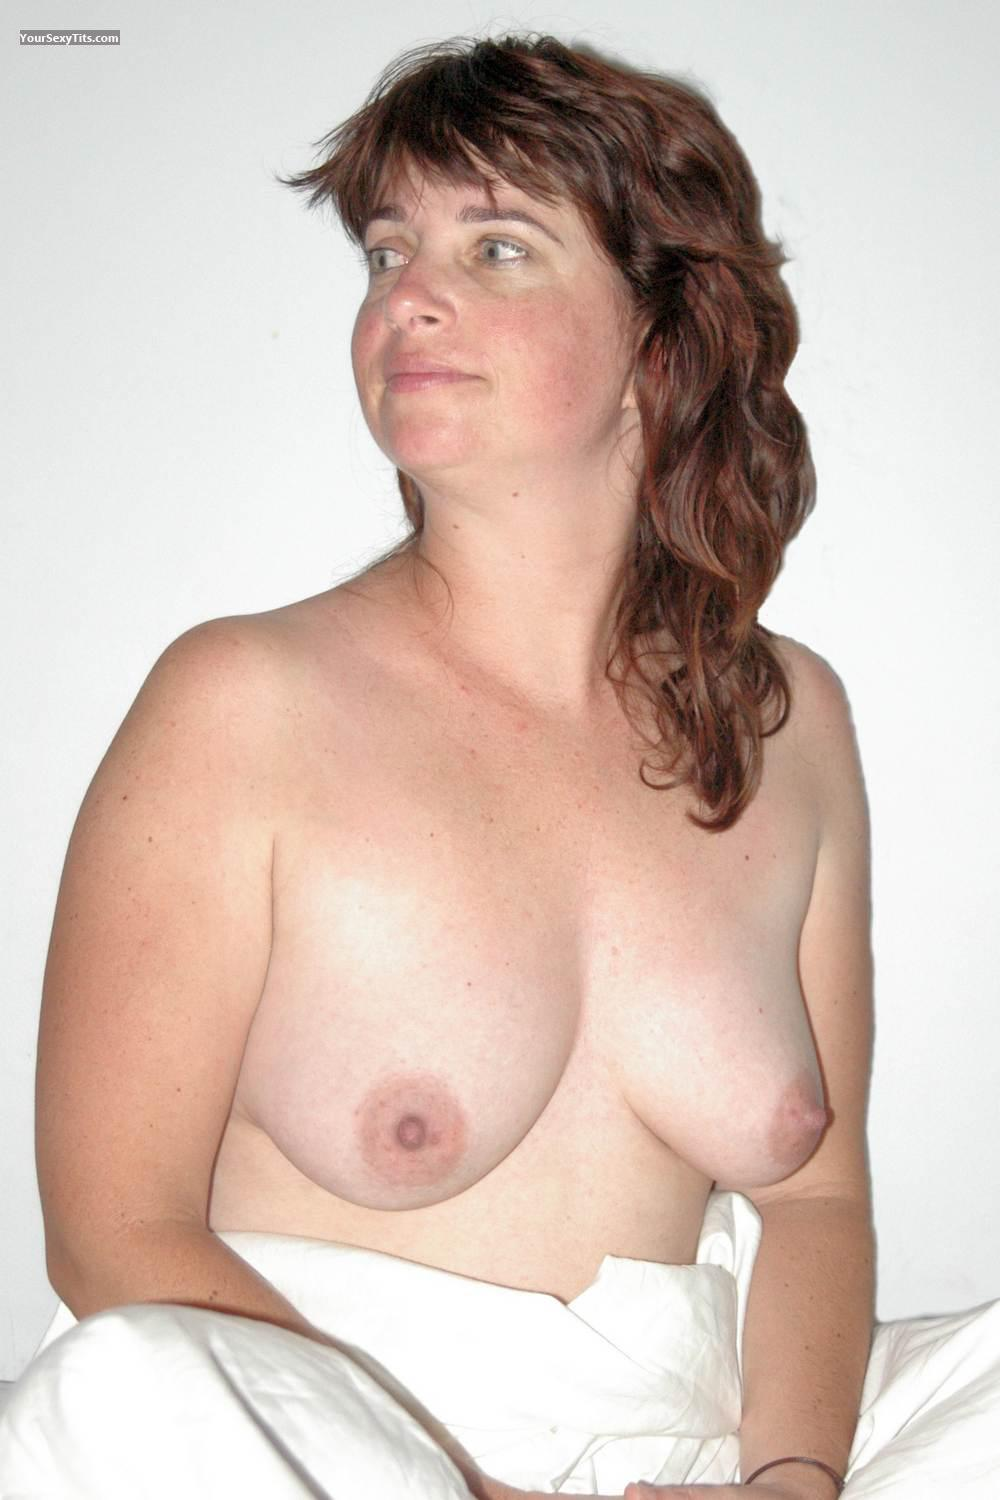 Tit Flash: Ex-Wife's Medium Tits - Topless Jo from Australia